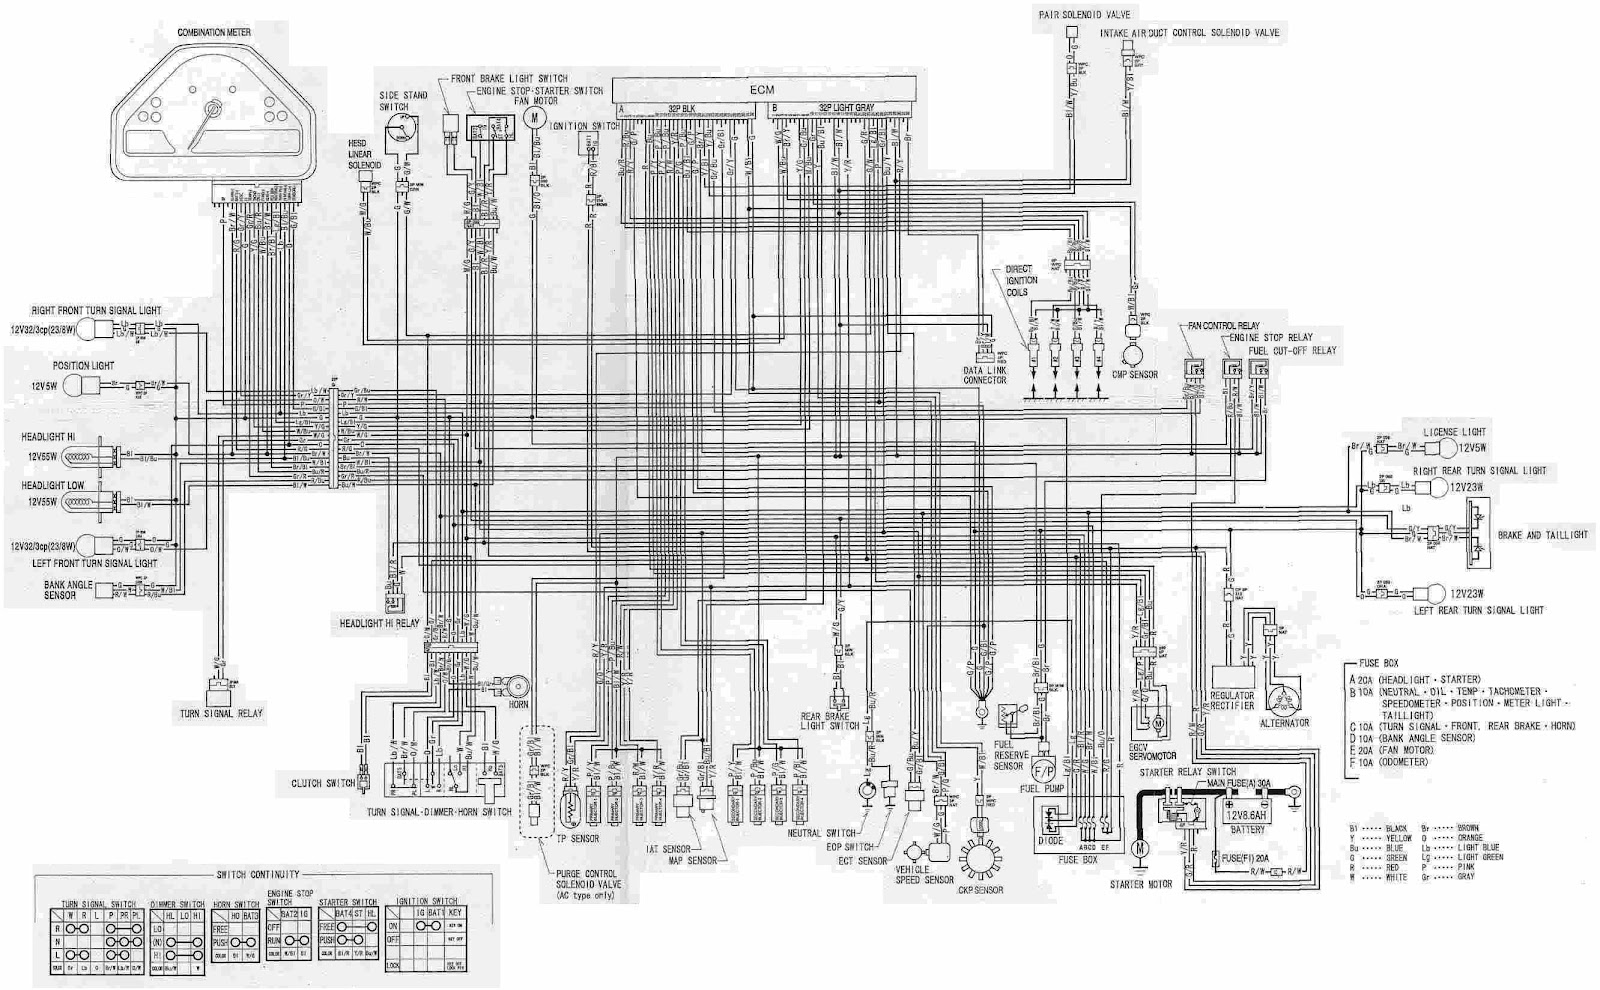 [SCHEMATICS_48EU]  DIAGRAM] Honda Cbr 1000 Wiring Diagram FULL Version HD Quality Wiring  Diagram - VENNDIAGRAMONLINE.NUITDEBOUTAIX.FR | 2001 Cbr Wiring Diagram |  | venndiagramonline.nuitdeboutaix.fr